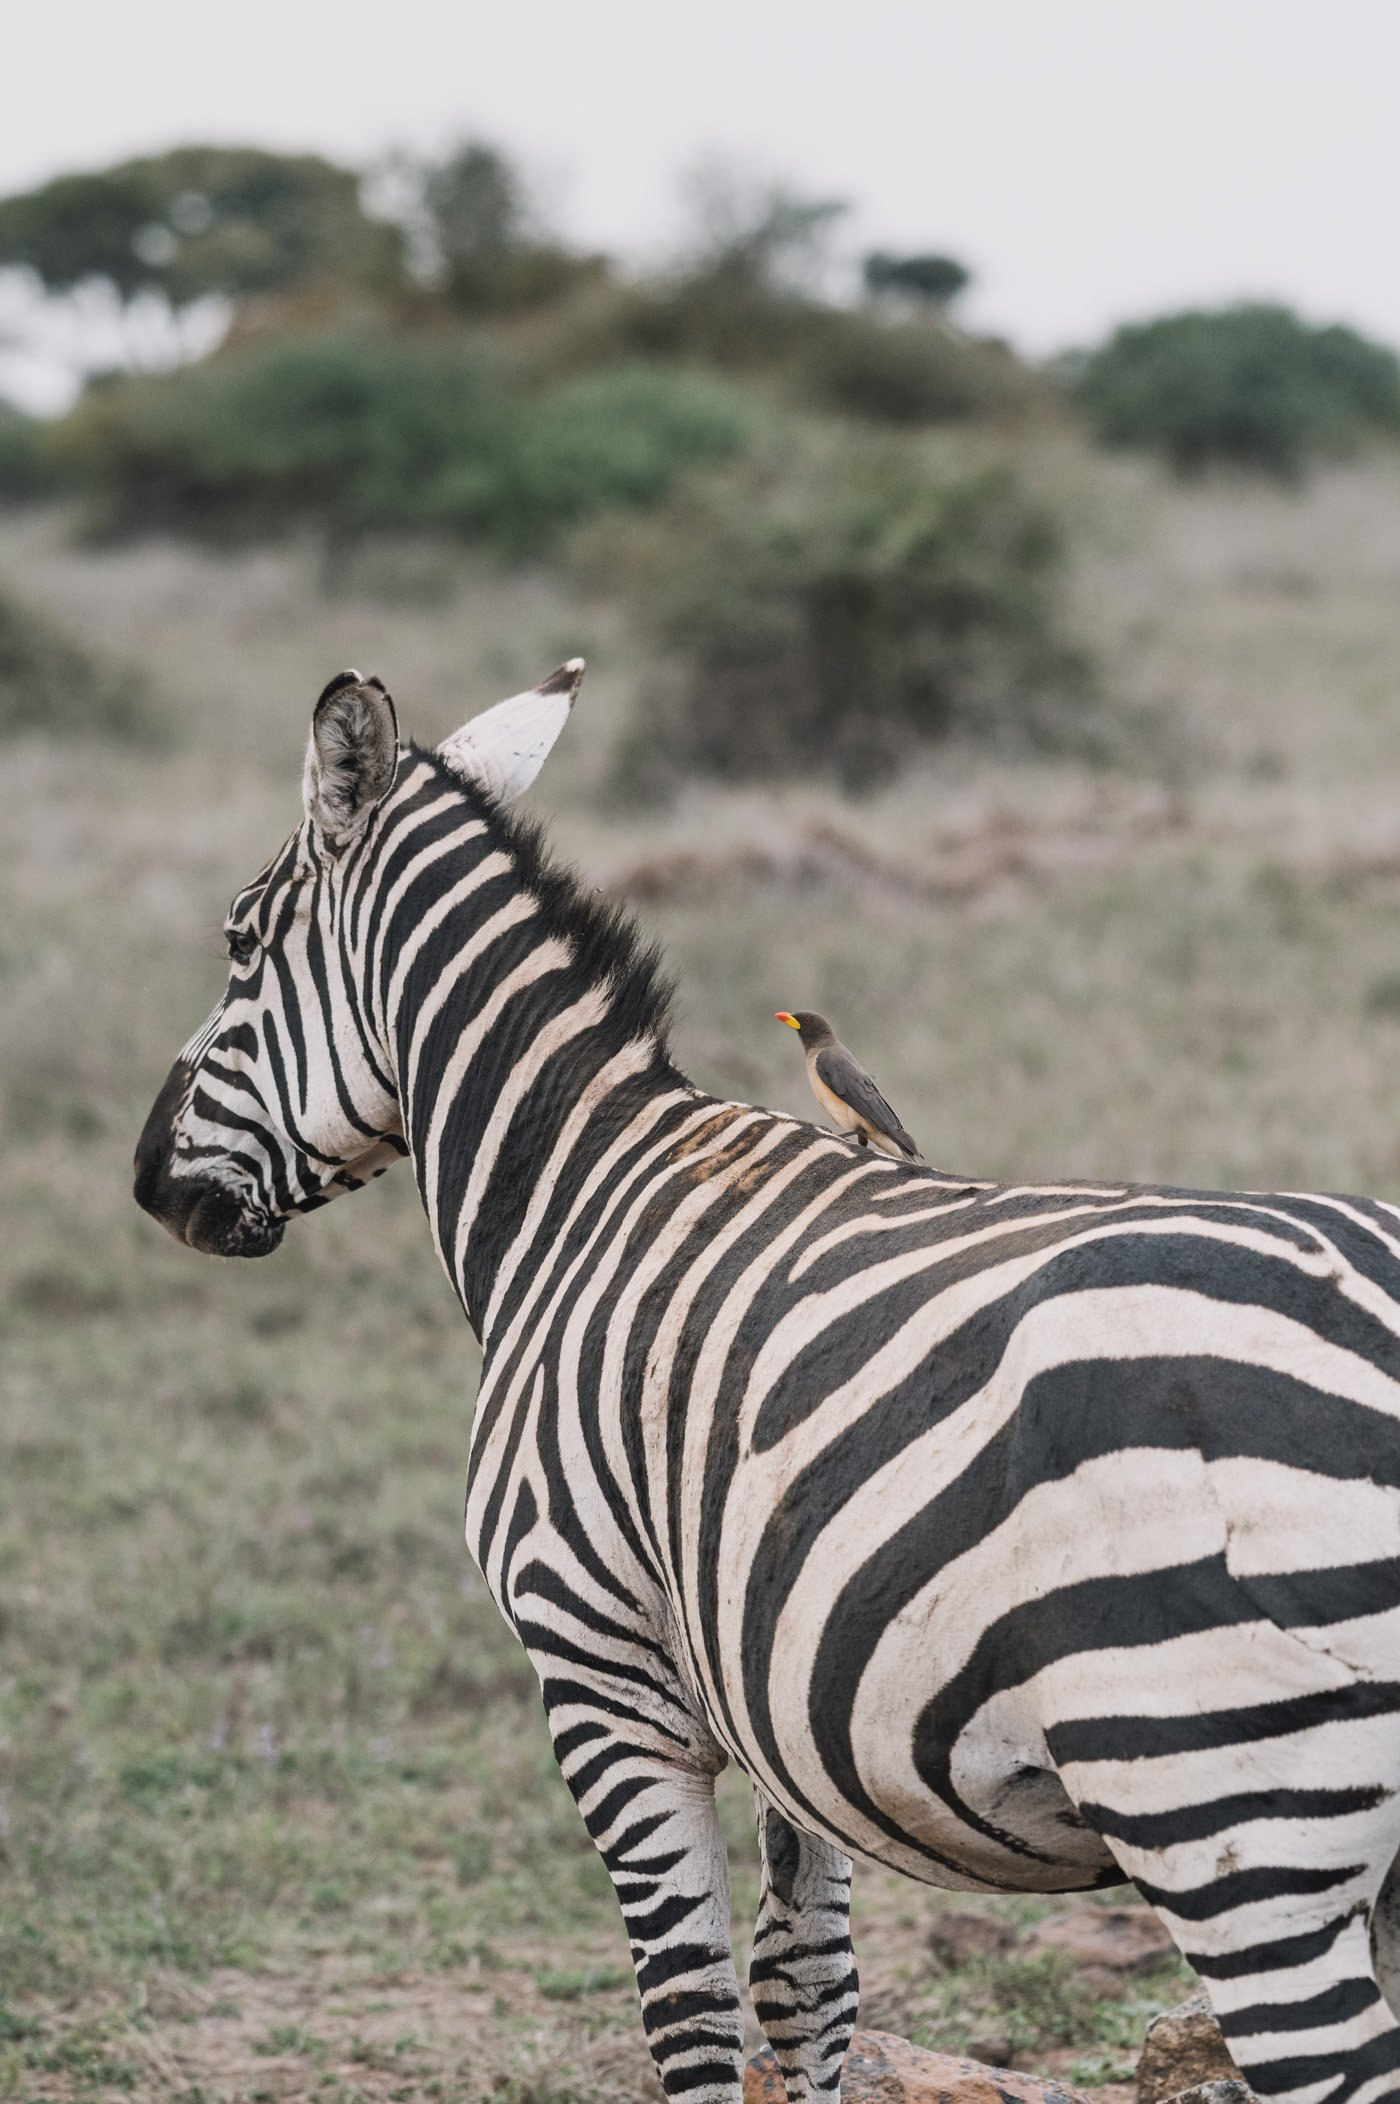 Zebra and Oxpecker at Nairobi National Park Kenya